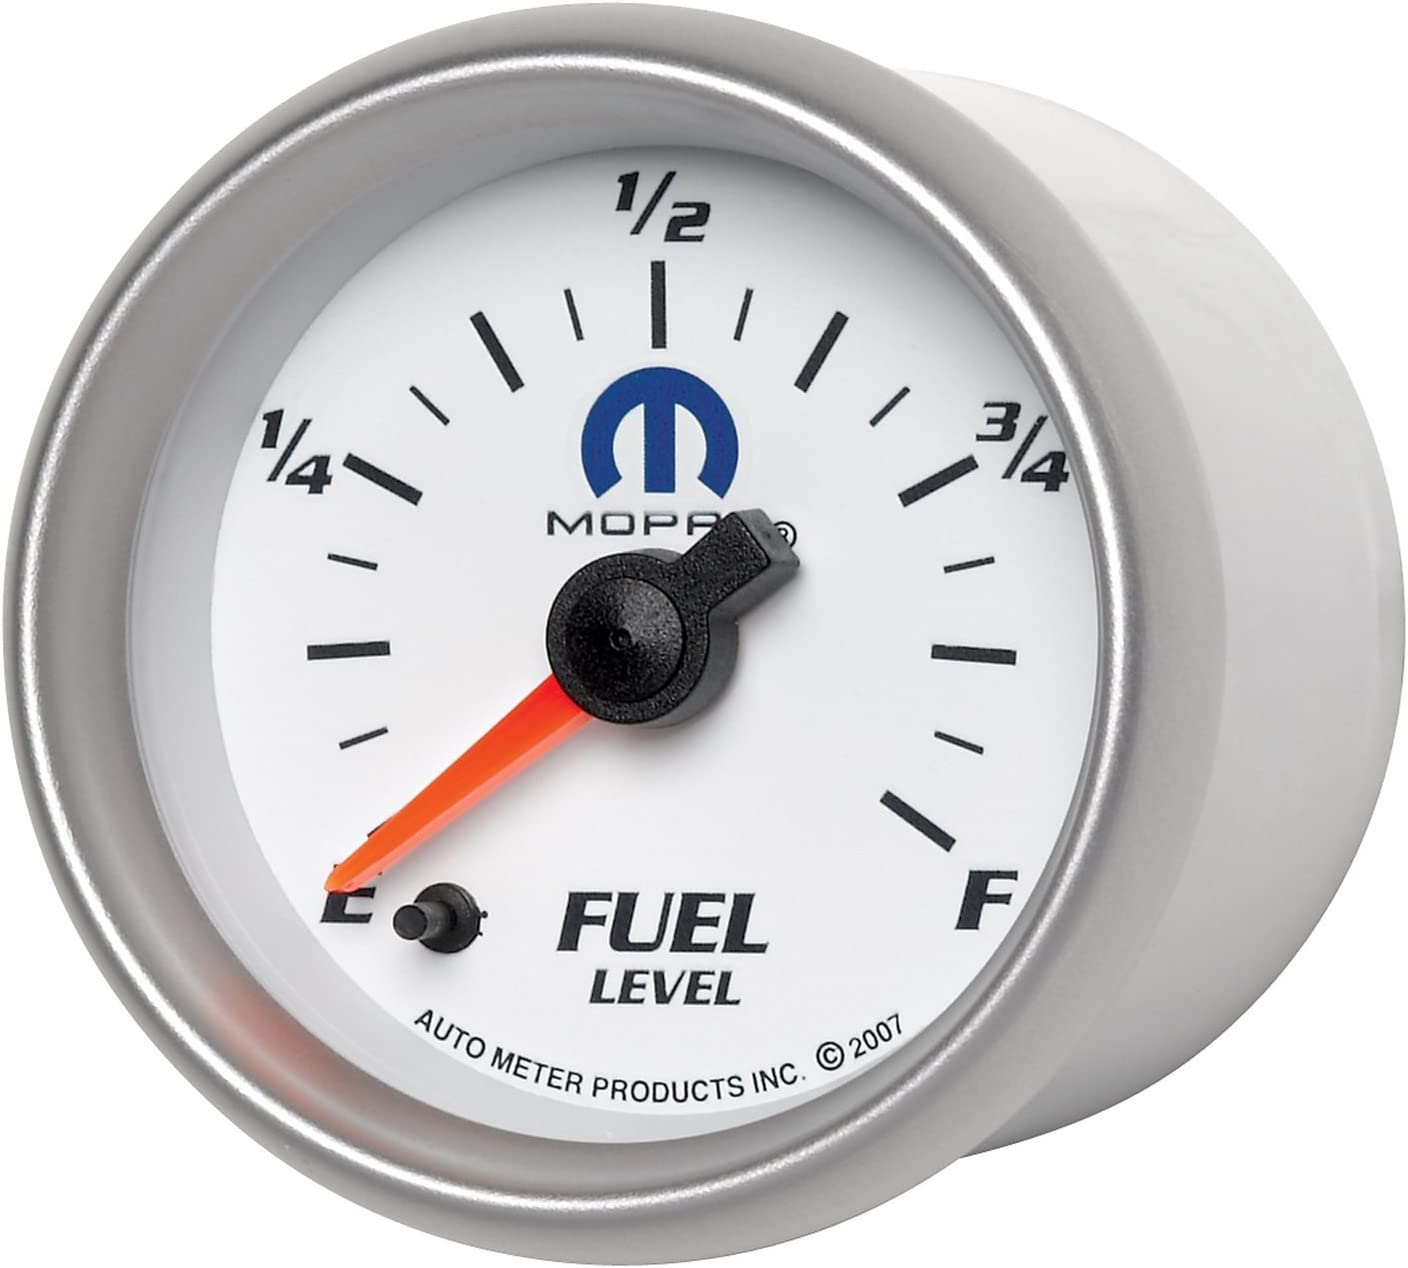 Auto Meter 880027 MOPAR Electric Programmable Fuel Level Gauge